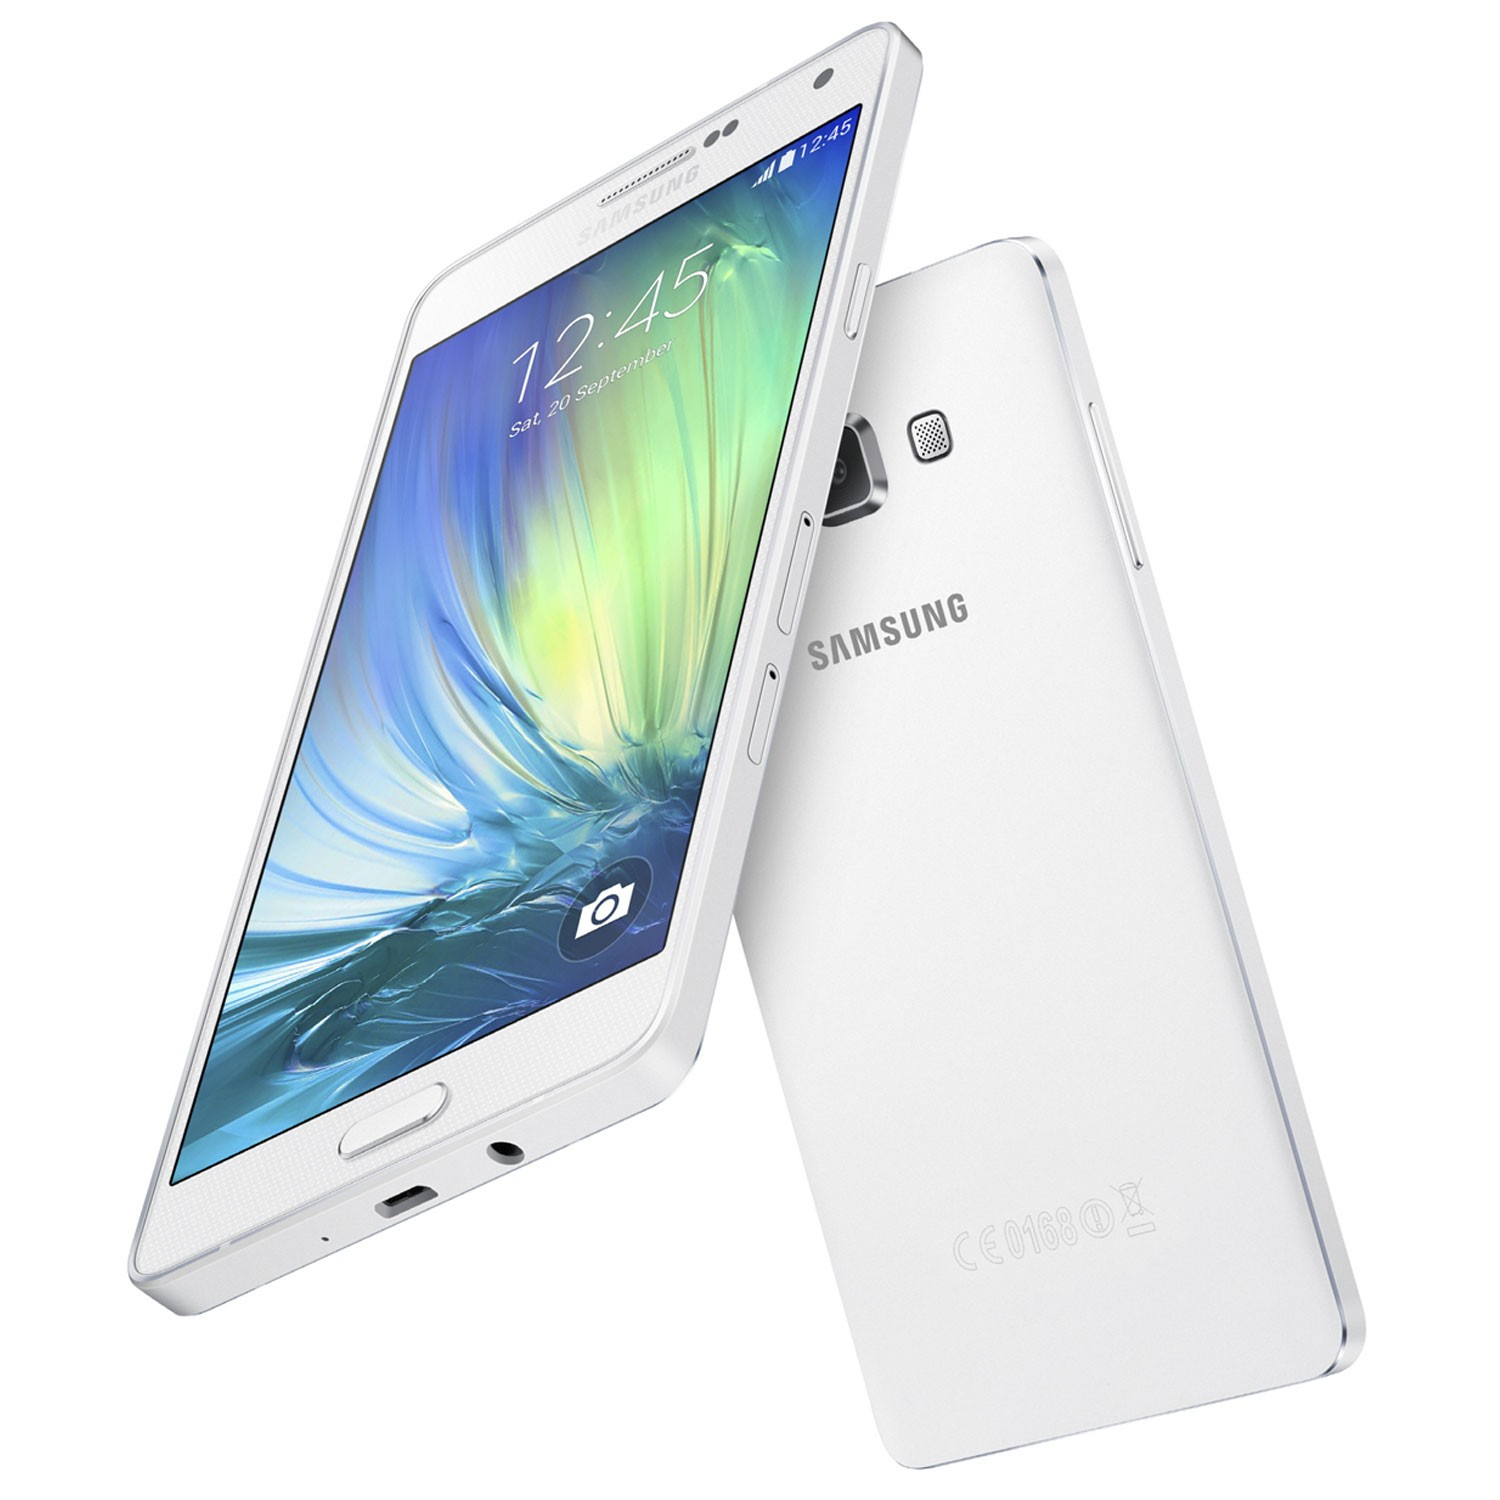 Samsung Galaxy E7 Review Full Phone Specifications Best Price